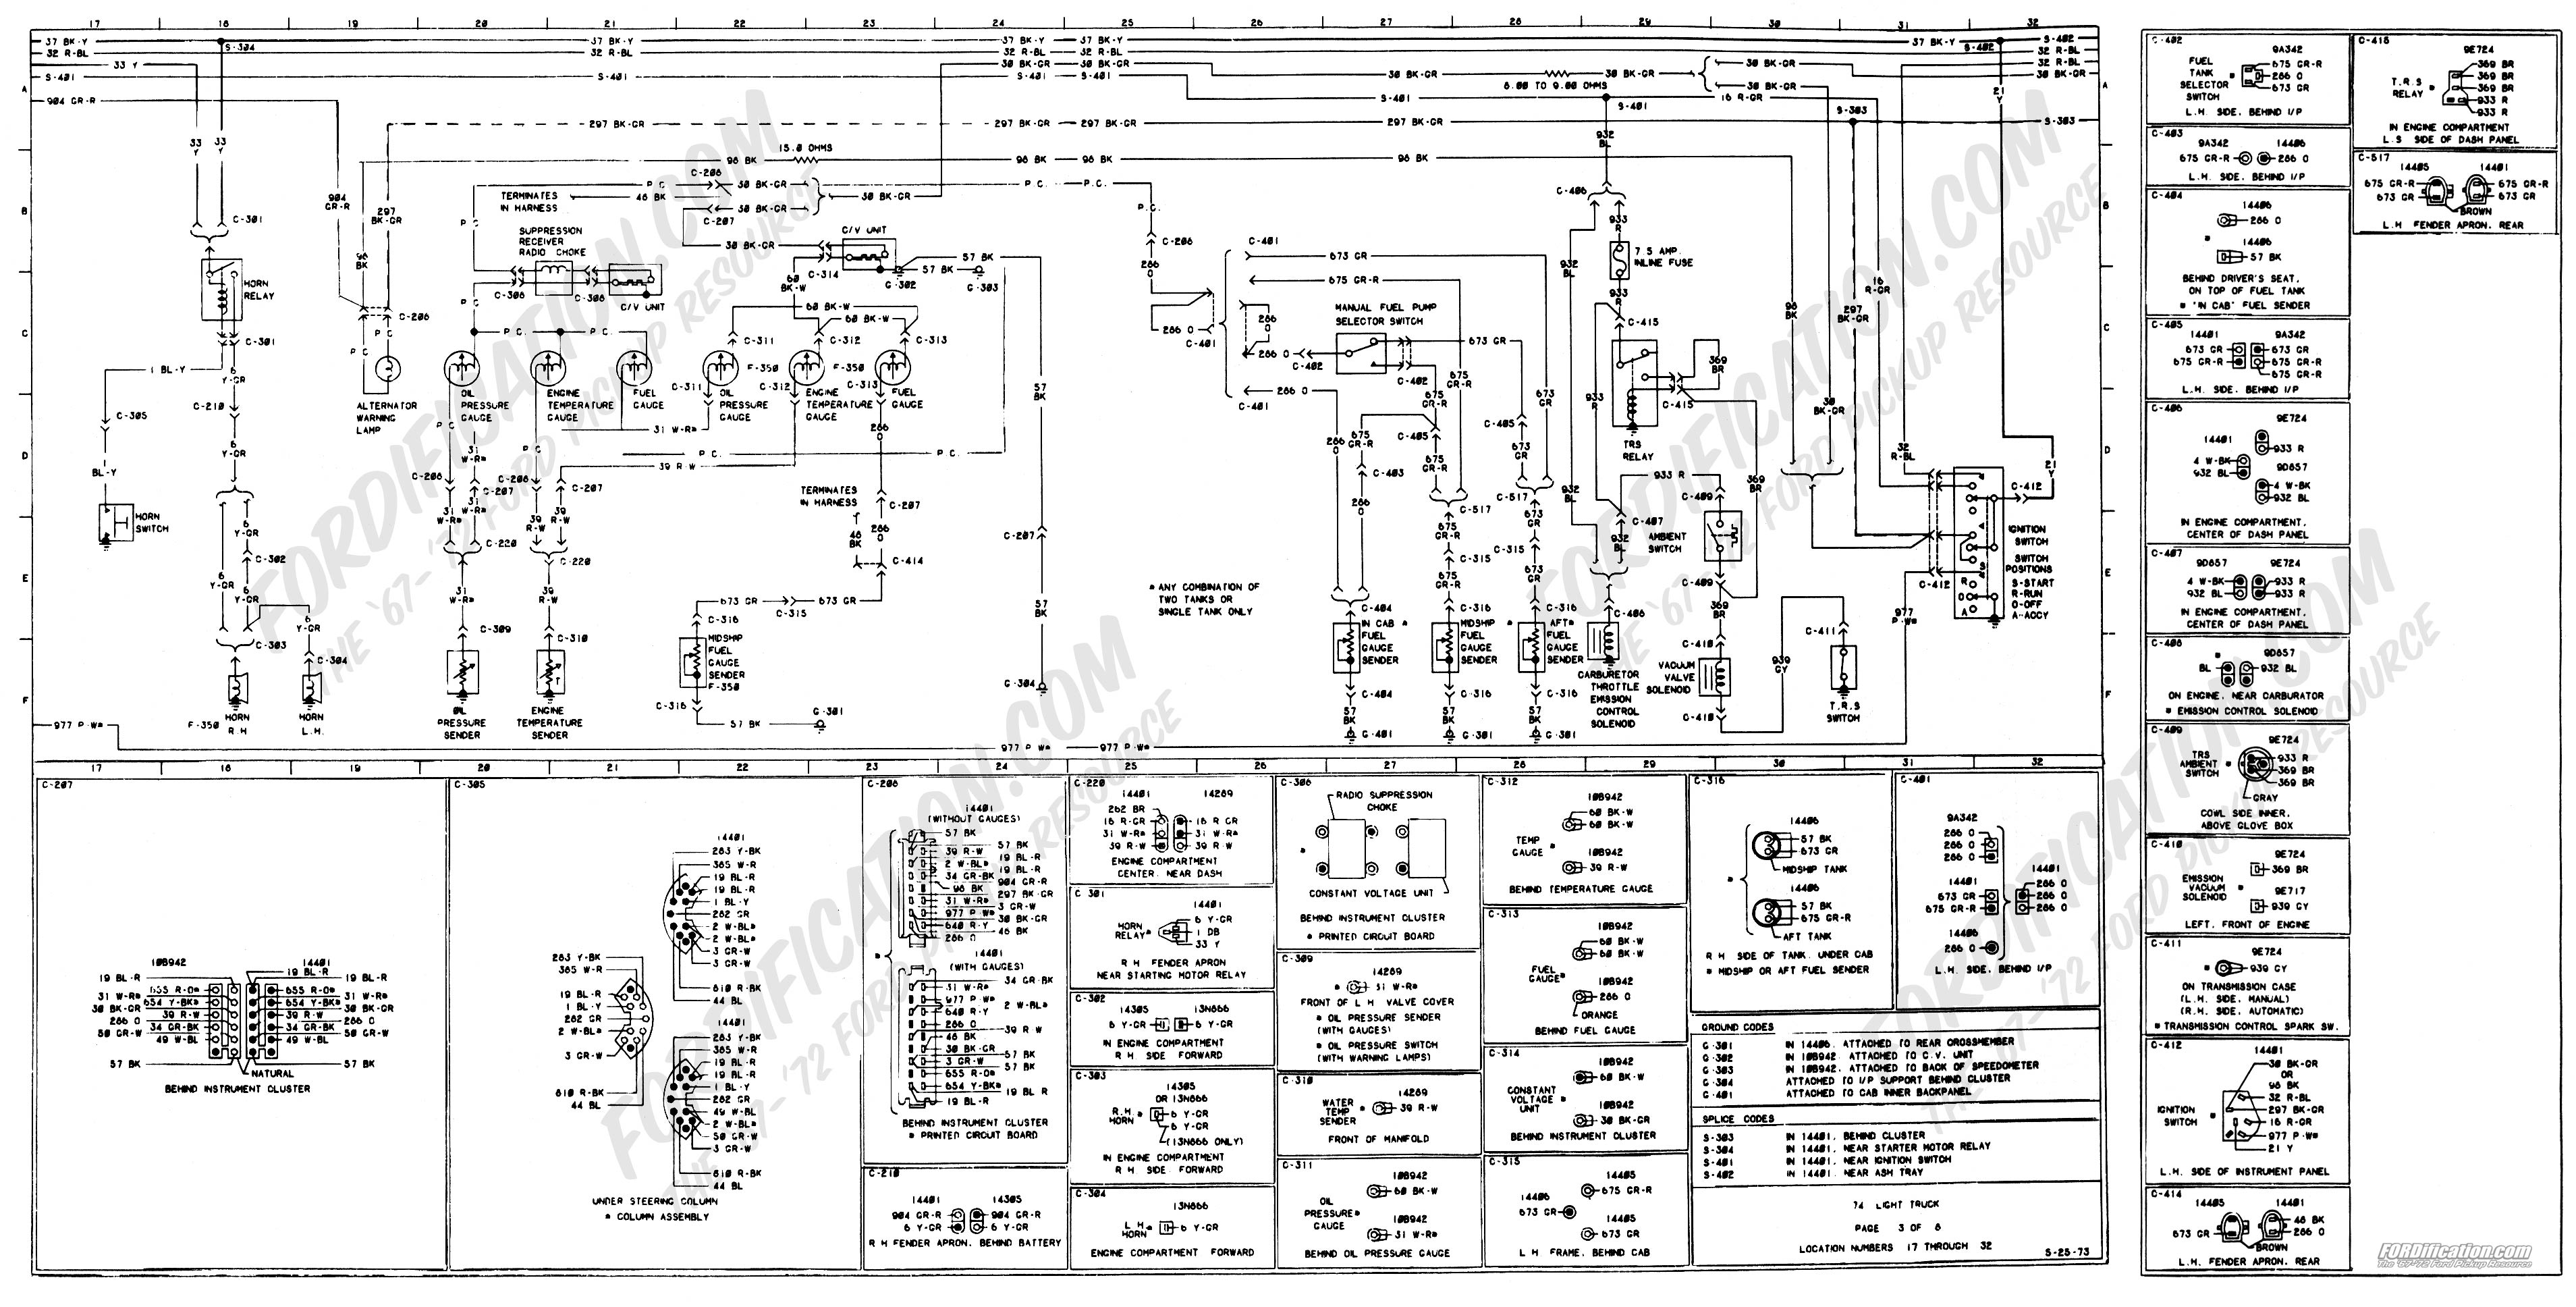 wiring_74master_3of8 1973 1979 ford truck wiring diagrams & schematics fordification net 2010 f350 wiring diagram at fashall.co